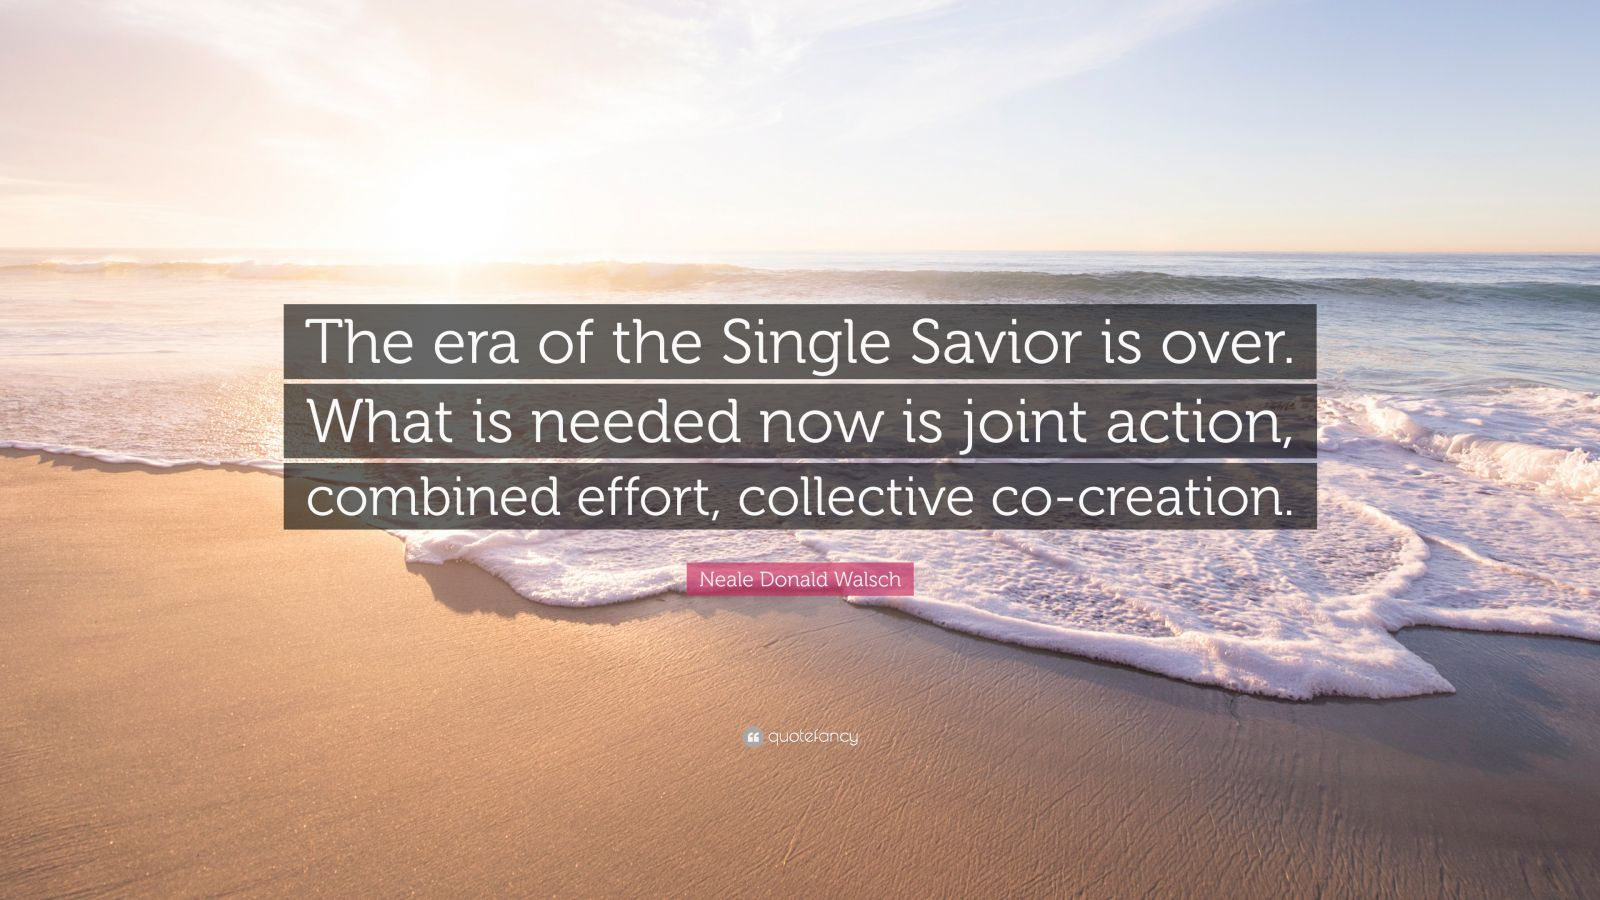 """Neale Donald Walsch Quote: """"The era of the Single Savior is over. What is needed now is joint action, combined effort, collective co-creation."""""""